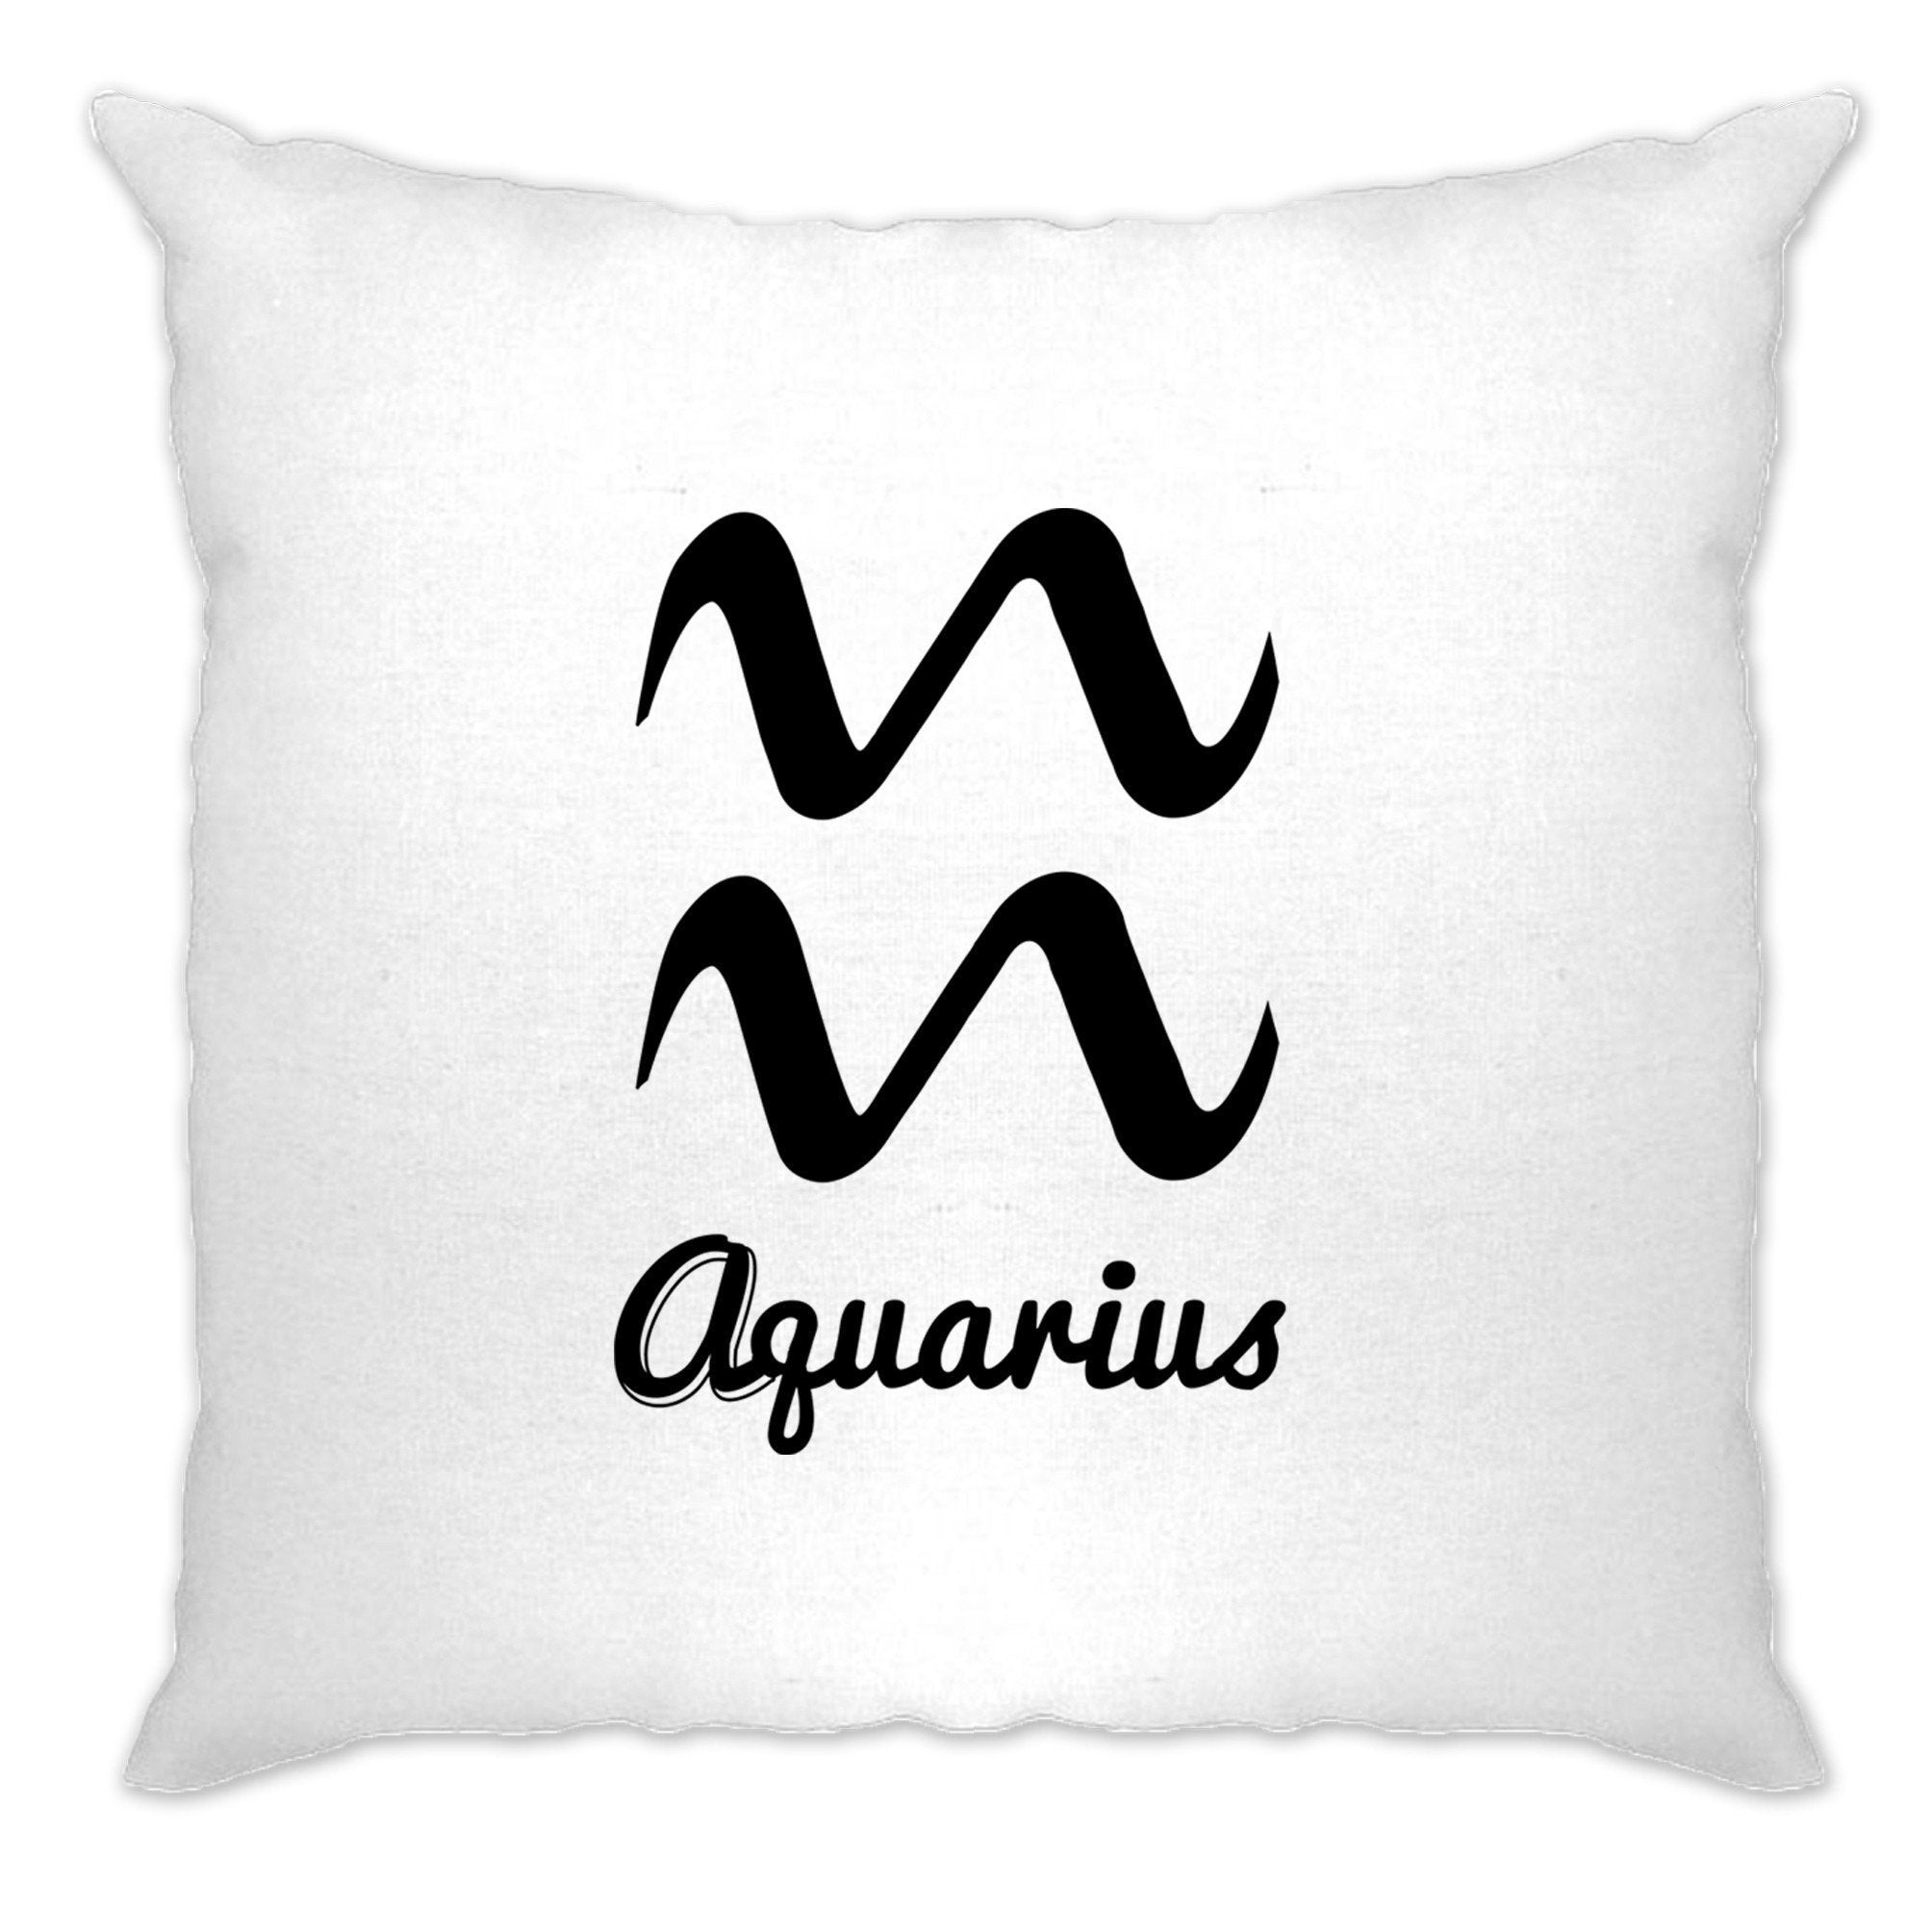 Horoscope Cushion Cover Aquarius Zodiac Star Sign Birthday